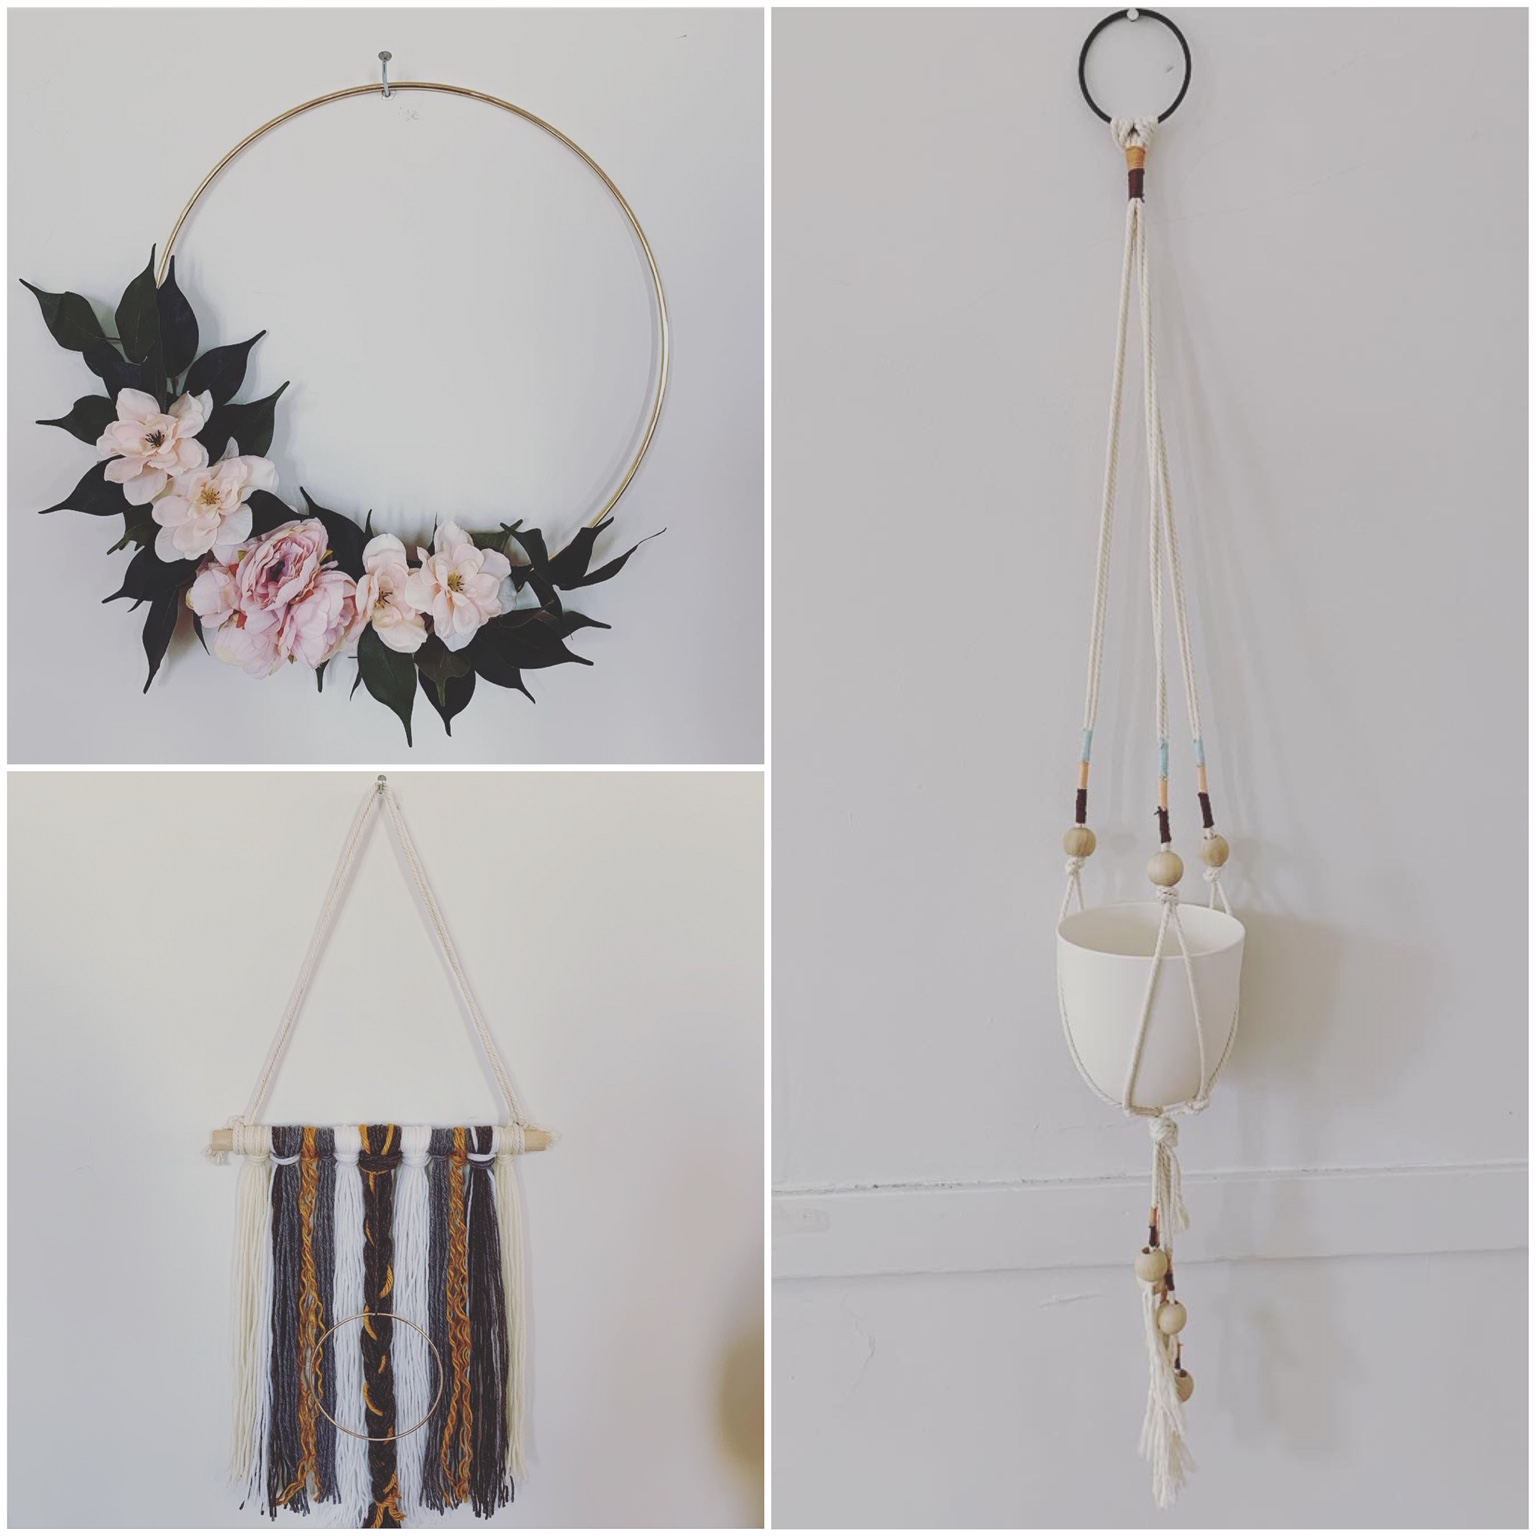 Open Studio - July 3rd 6-8pm - $25.00Have you missed out on a class you wanted to attend? Choose to create a floral wreath, yarn wall hanging, or plant hanger.See individual project descriptions below.Each registration comes with a complimentary glass of wine!Enrollment is limited to 15 per class. Please head to PAYMENTS page to register!